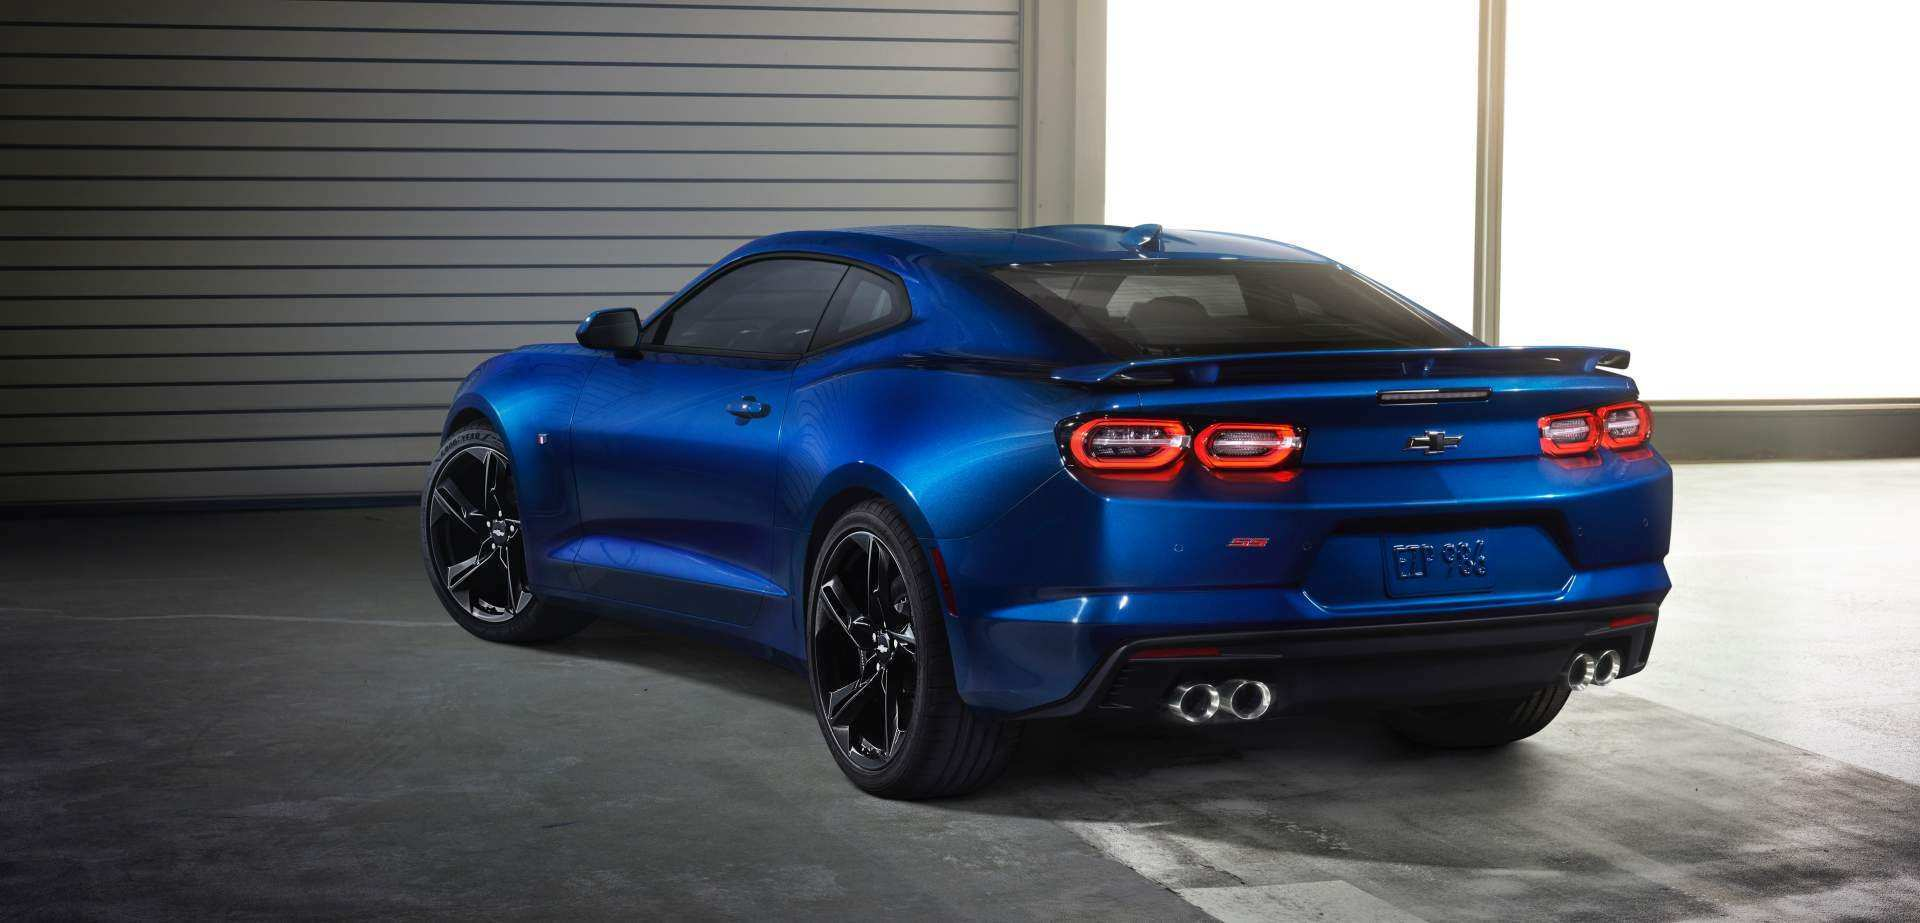 71 A Chevrolet Camaro 2020 Pictures Pricing